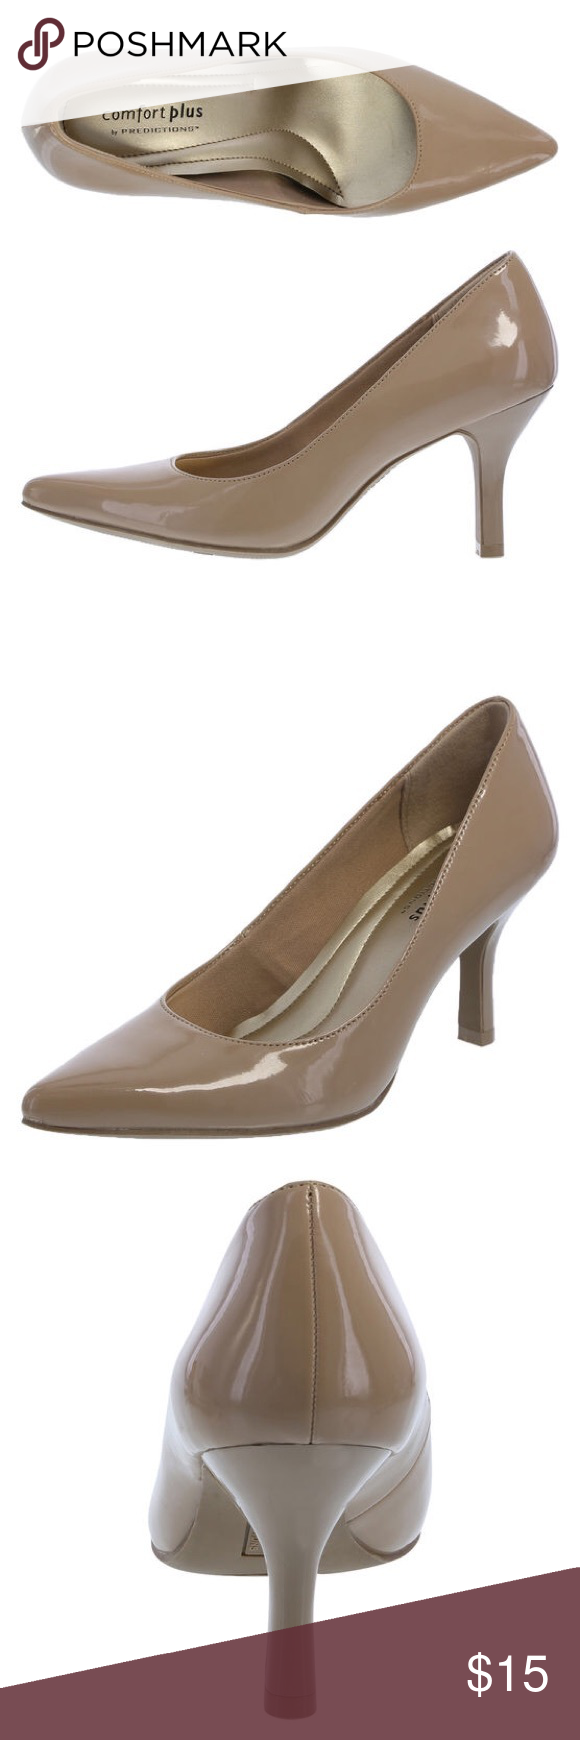 765b1c4be2f Comfort Plus Nude Pump Size 7 The women s Janine Pointy Toe Pump from Comfort  Plus by